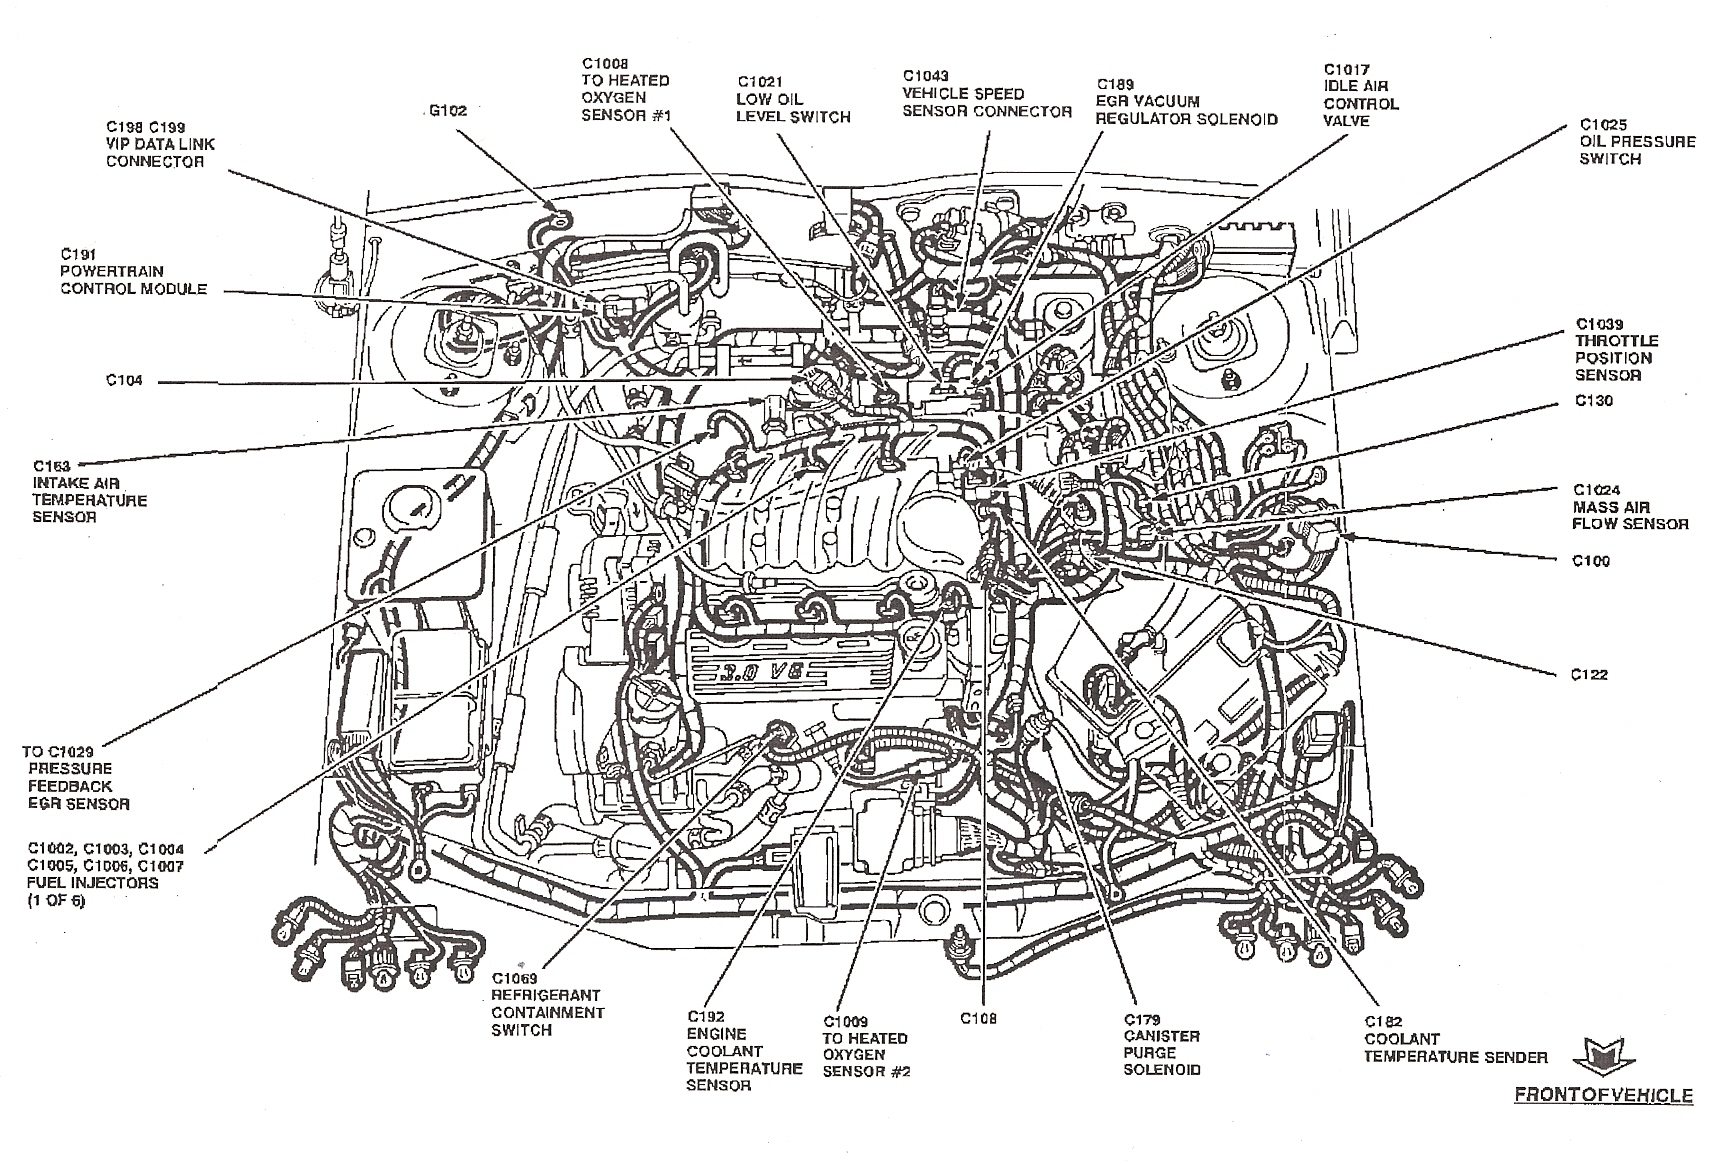 94 ford taurus page 2 fordforumsonline com 2001 ford taurus fuse box diagram under hood at suagrazia.org